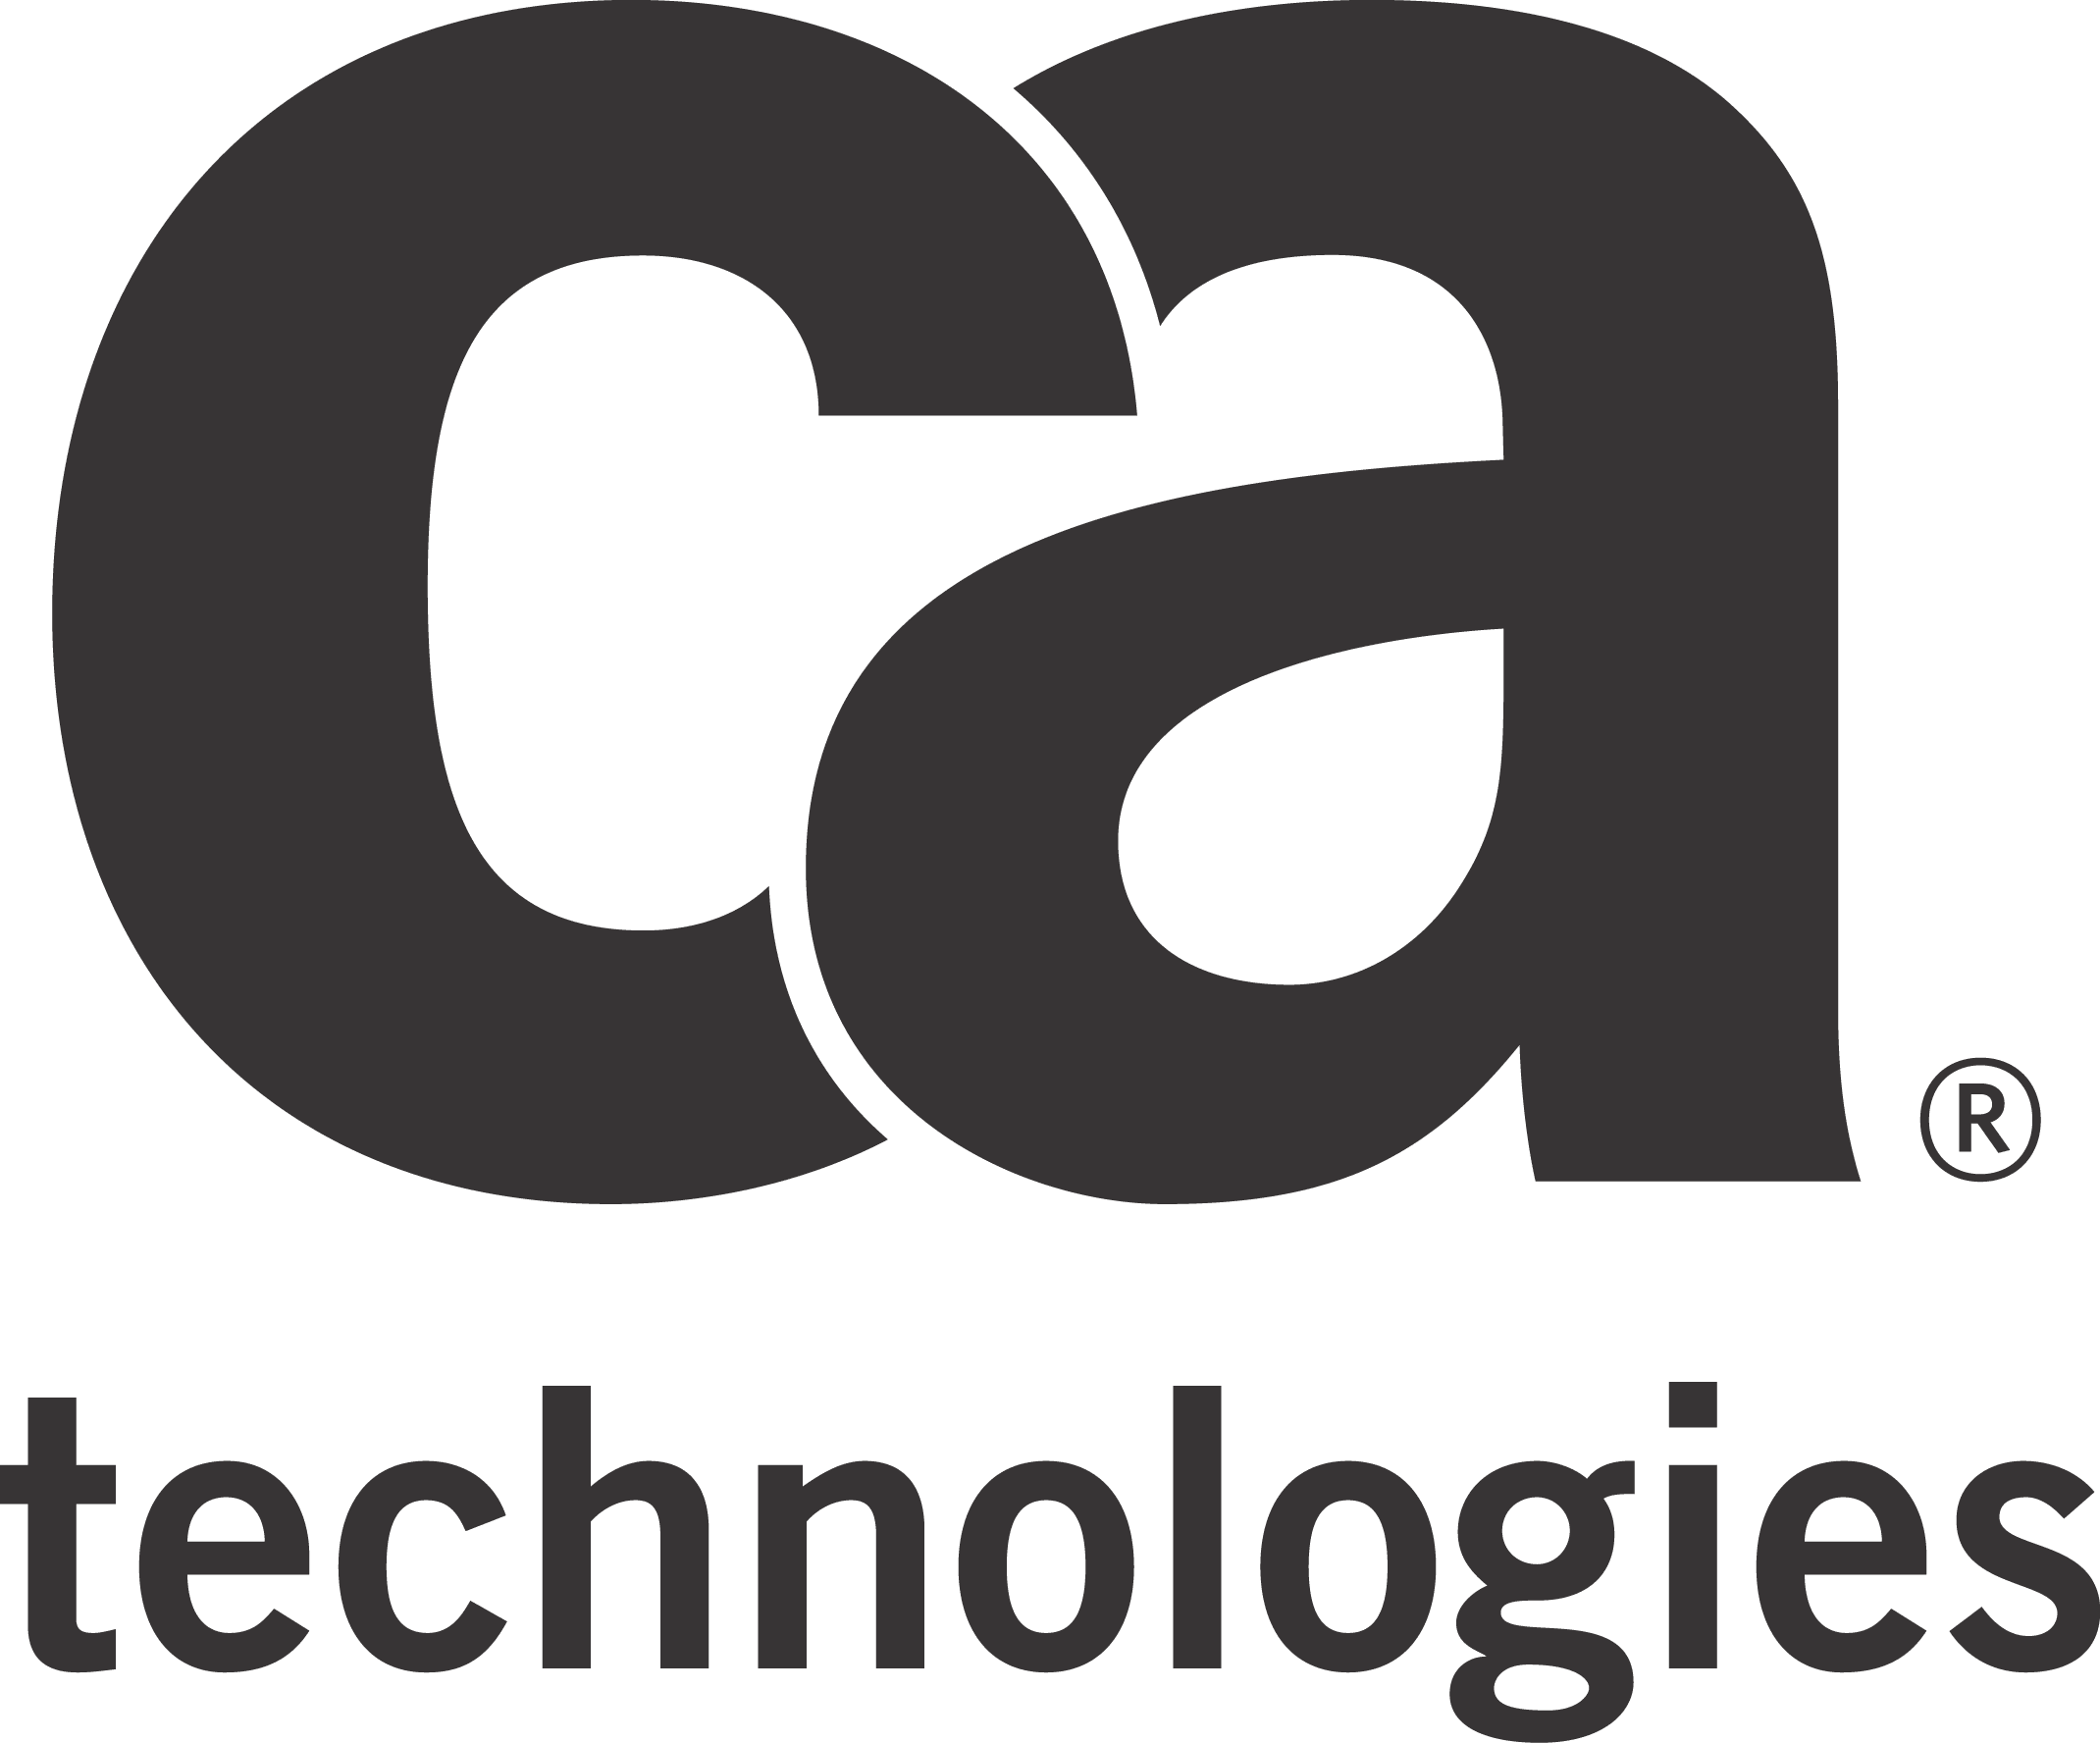 CA Technologies Logo [EPS File] Vector EPS Free Download, Logo, Icons, Brand Emblems